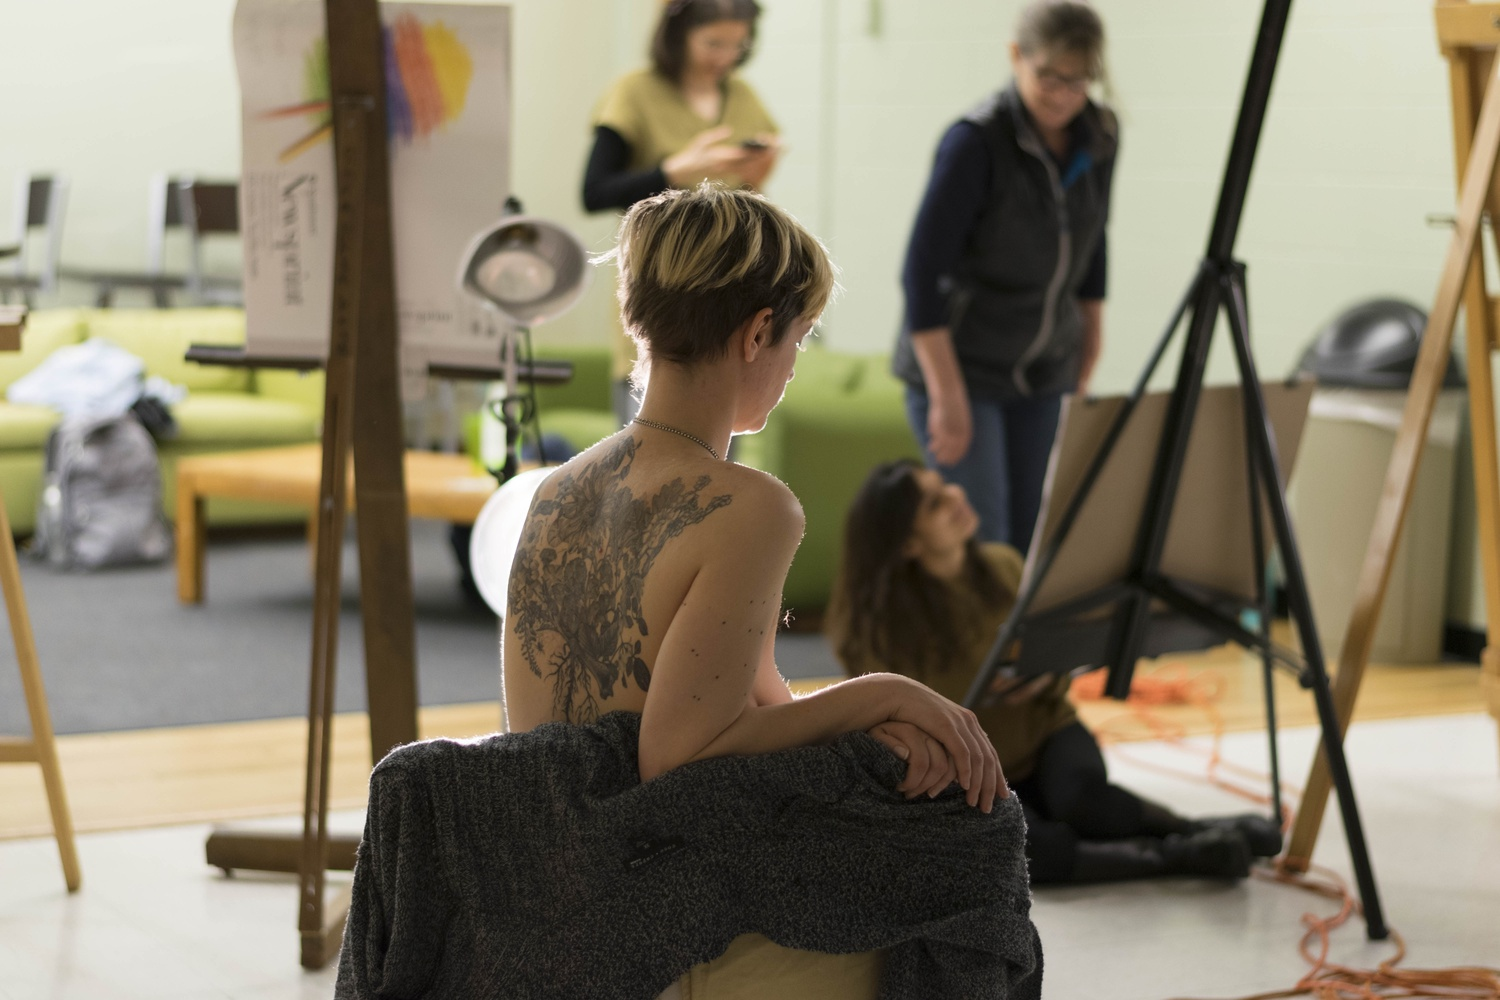 The model, Callista Womick, poses during the figure drawing class.